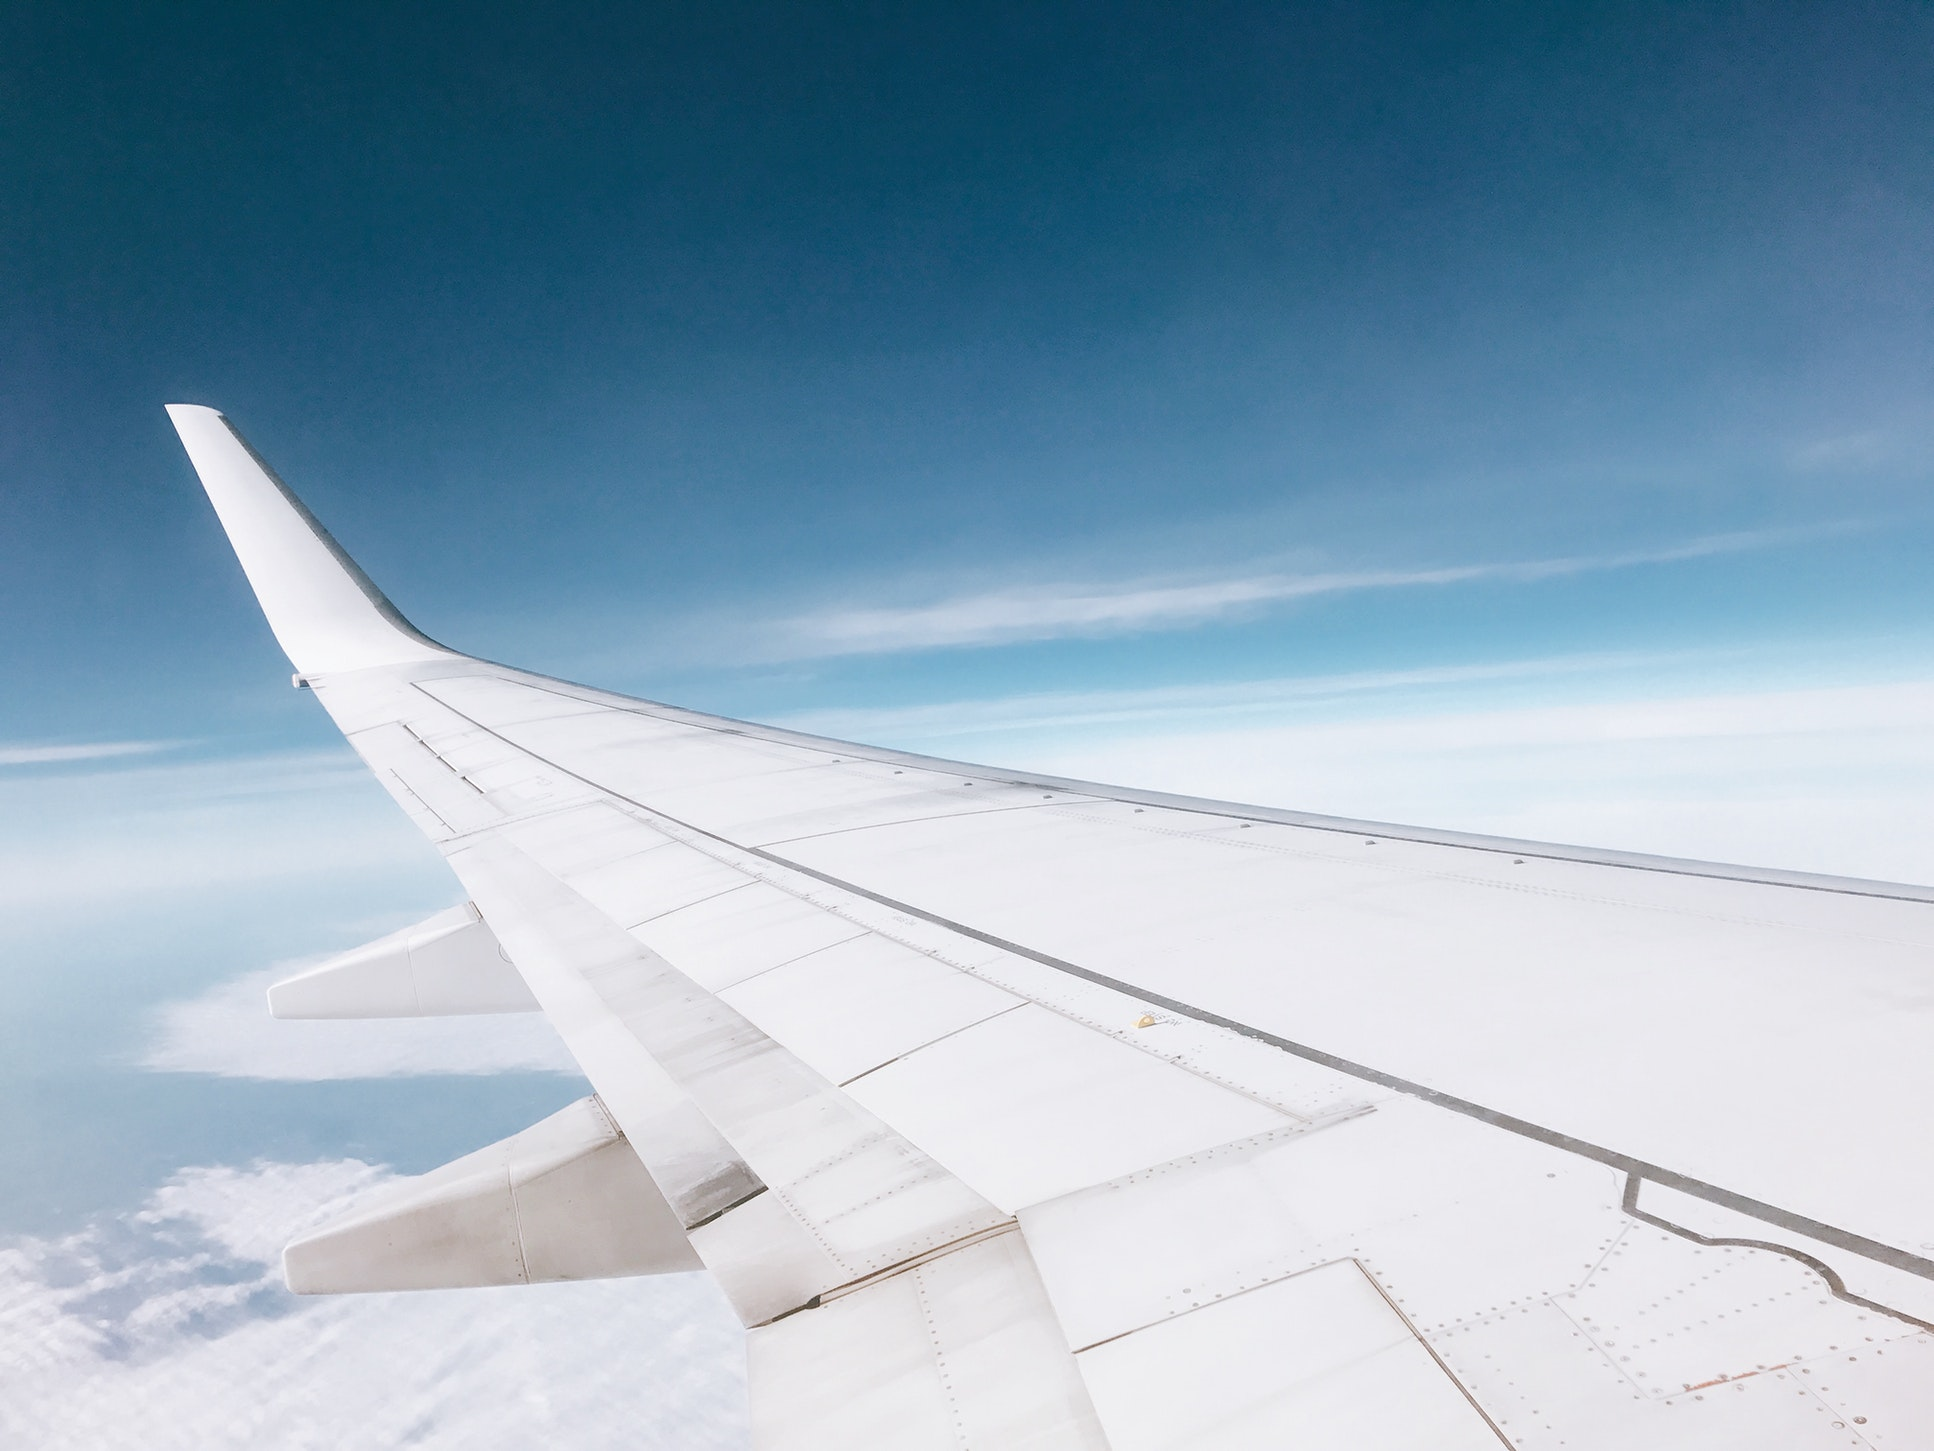 By looking at the travel industry, we can see how automation will change accounting